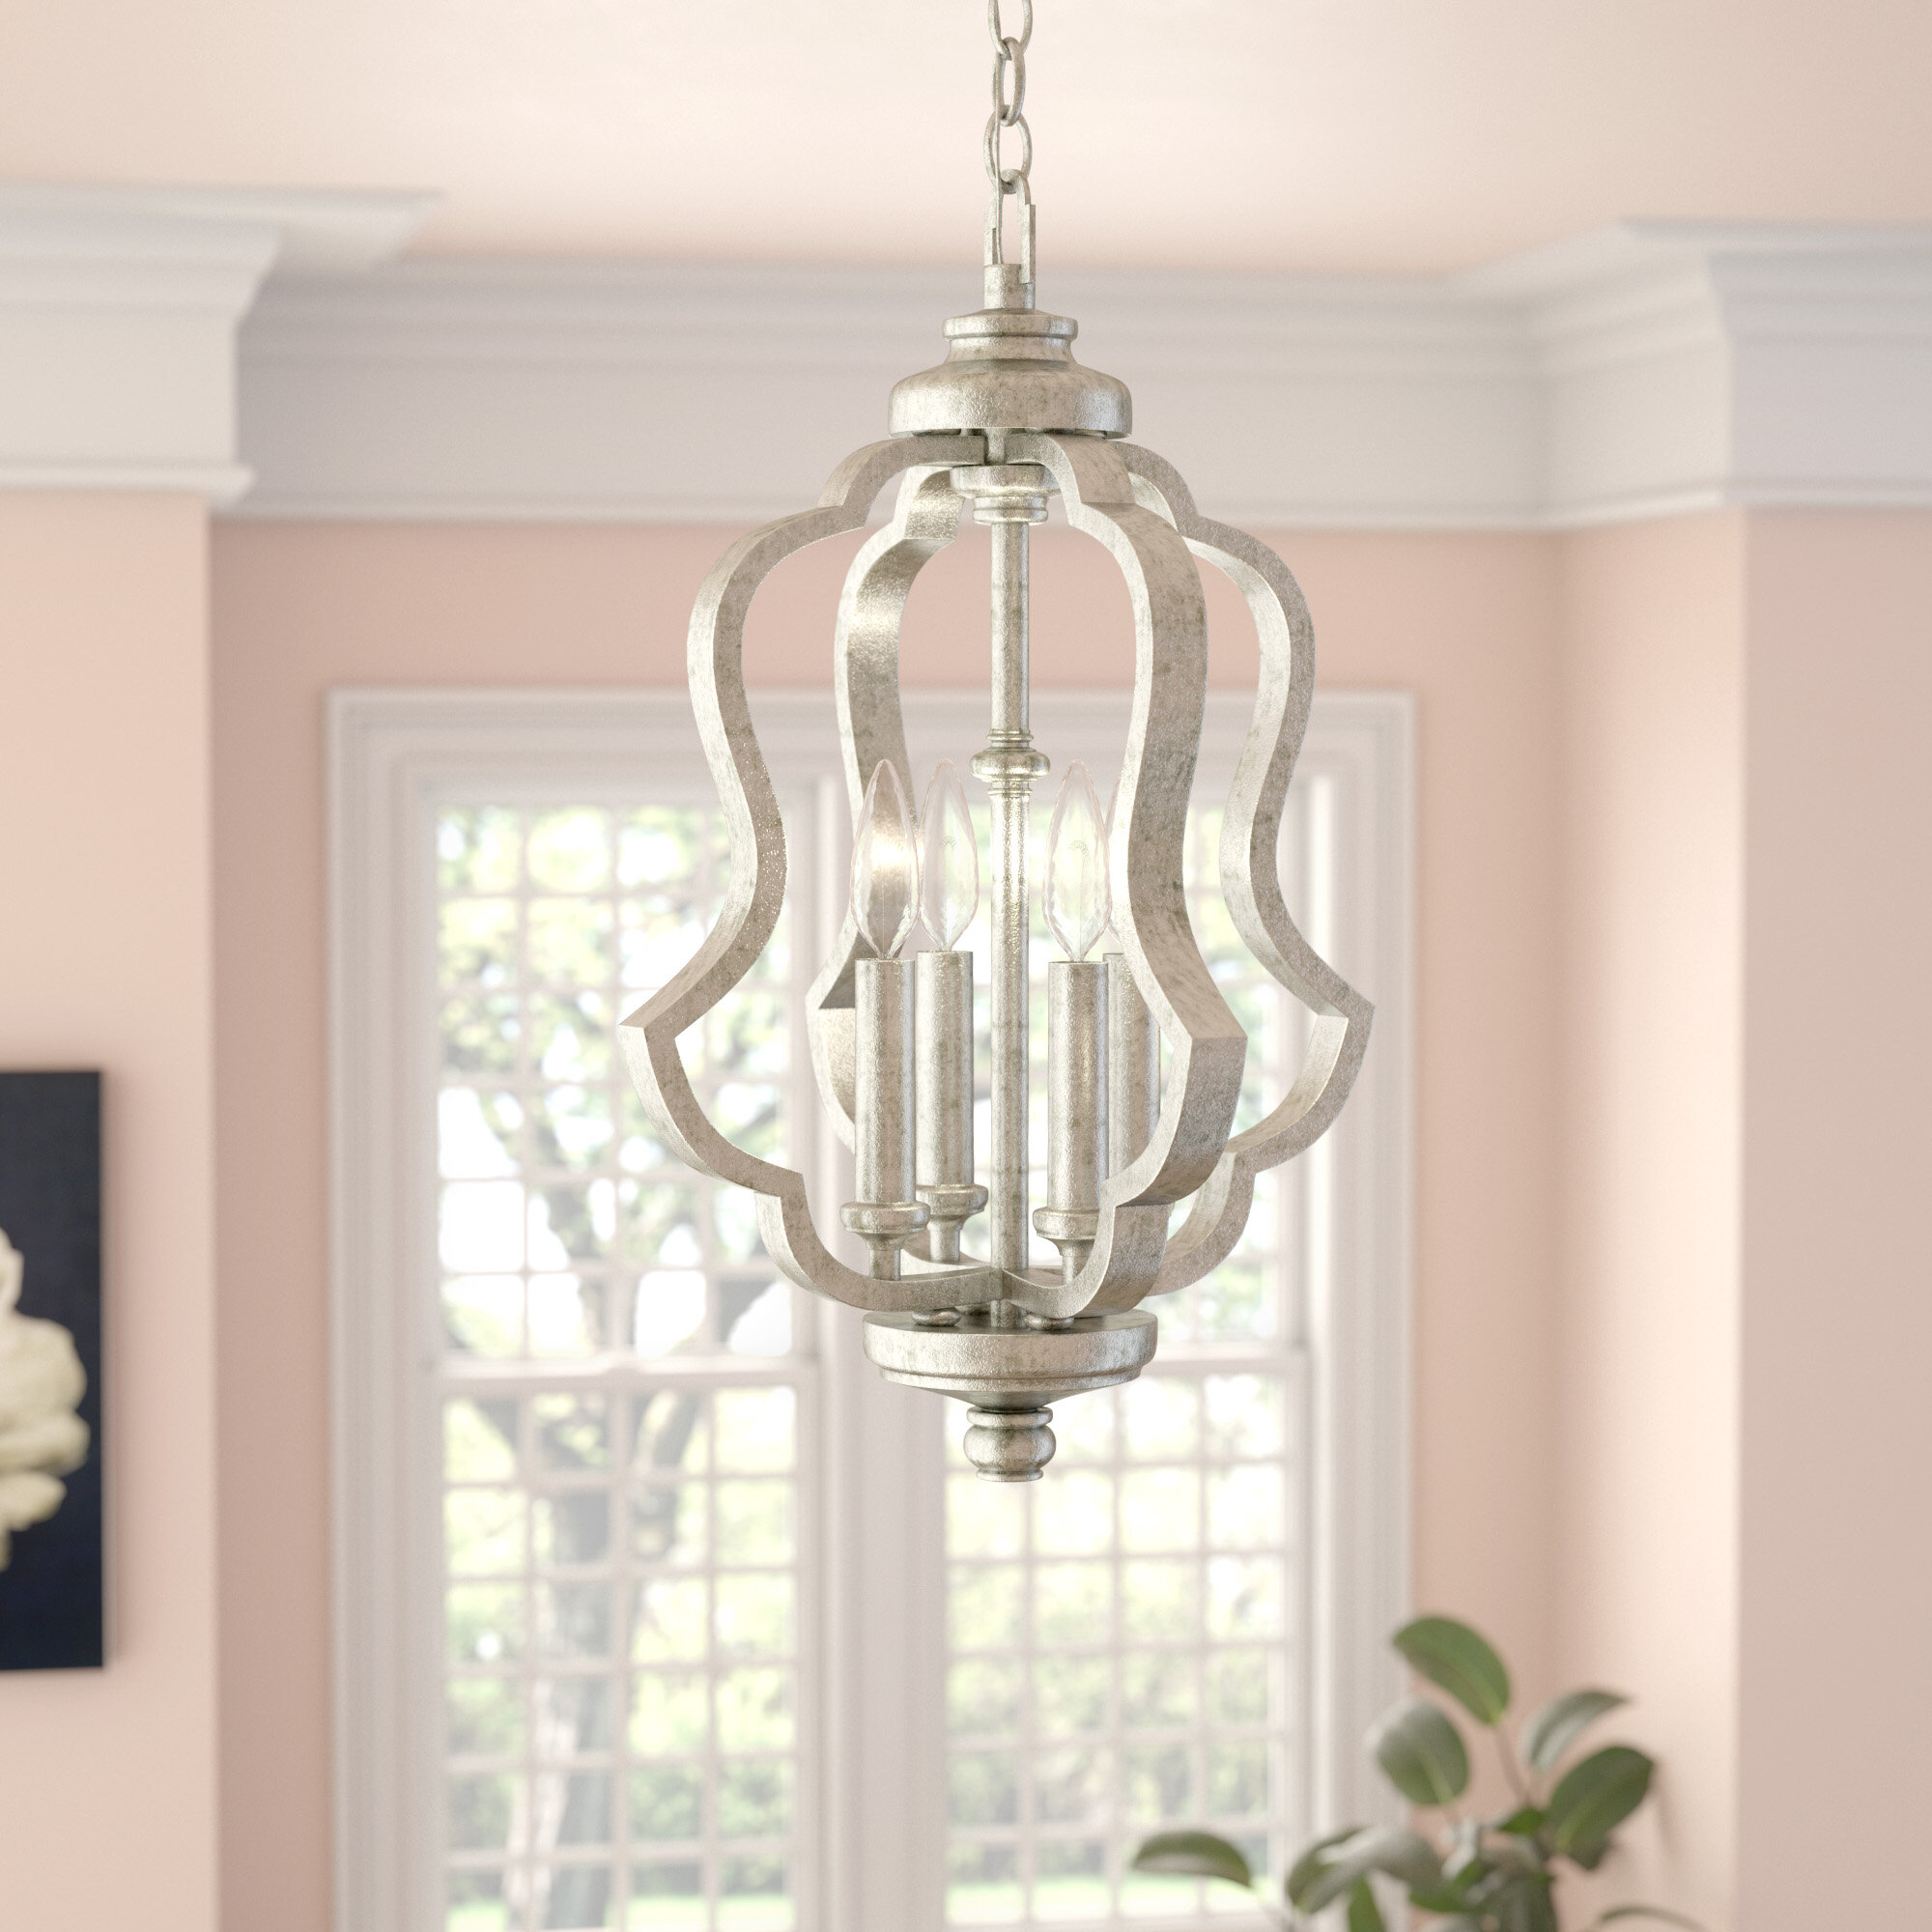 4 light pendant carmen willa arlo interiors erroll 4light pendant reviews wayfair